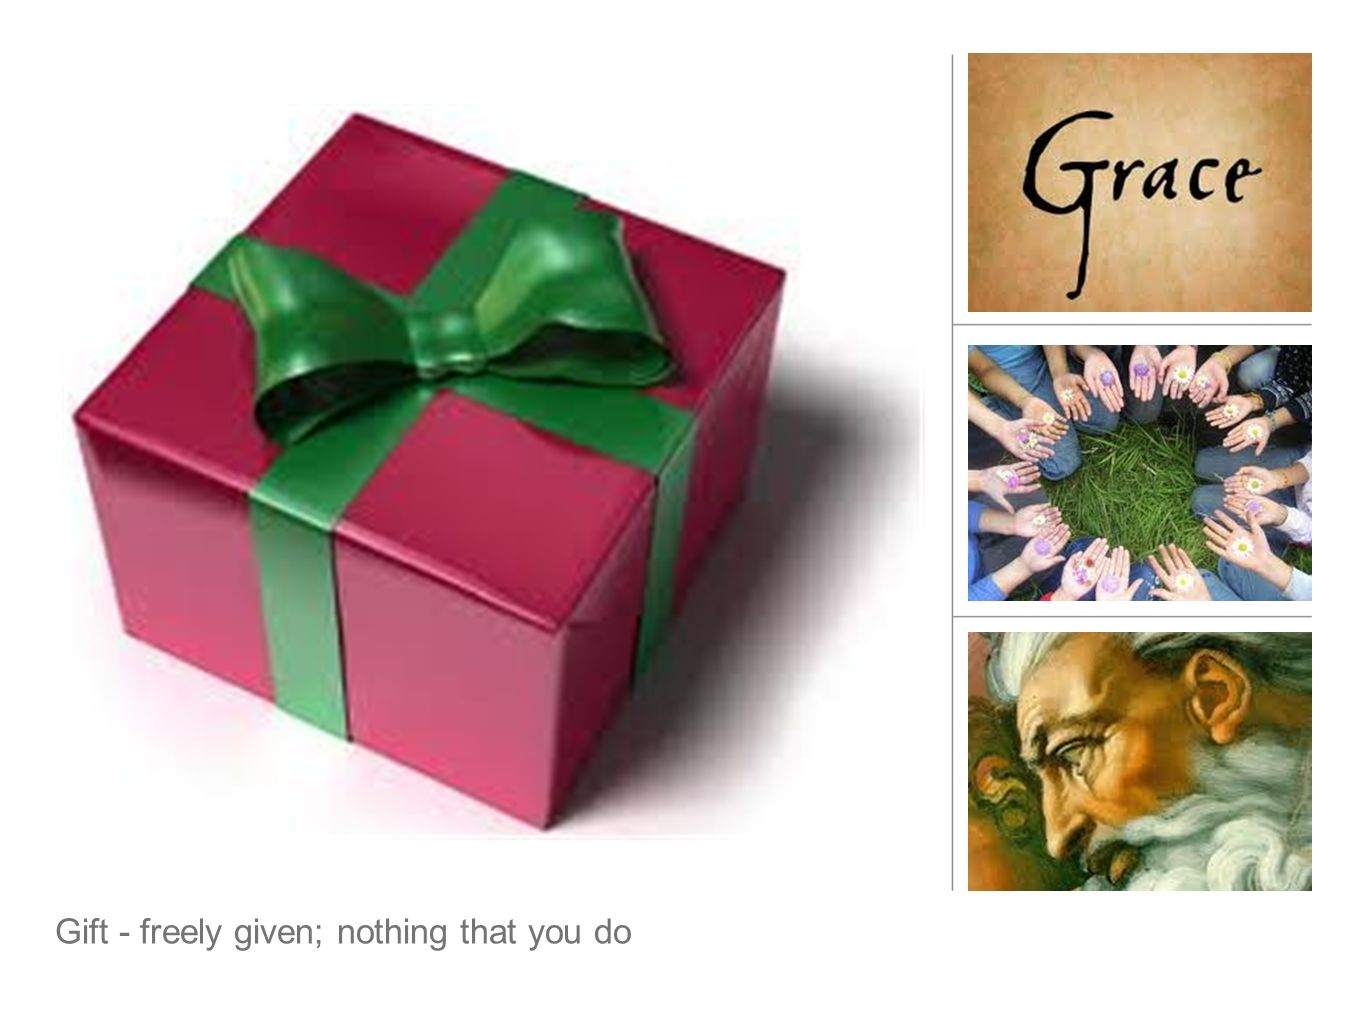 Gift - freely given; nothing that you do